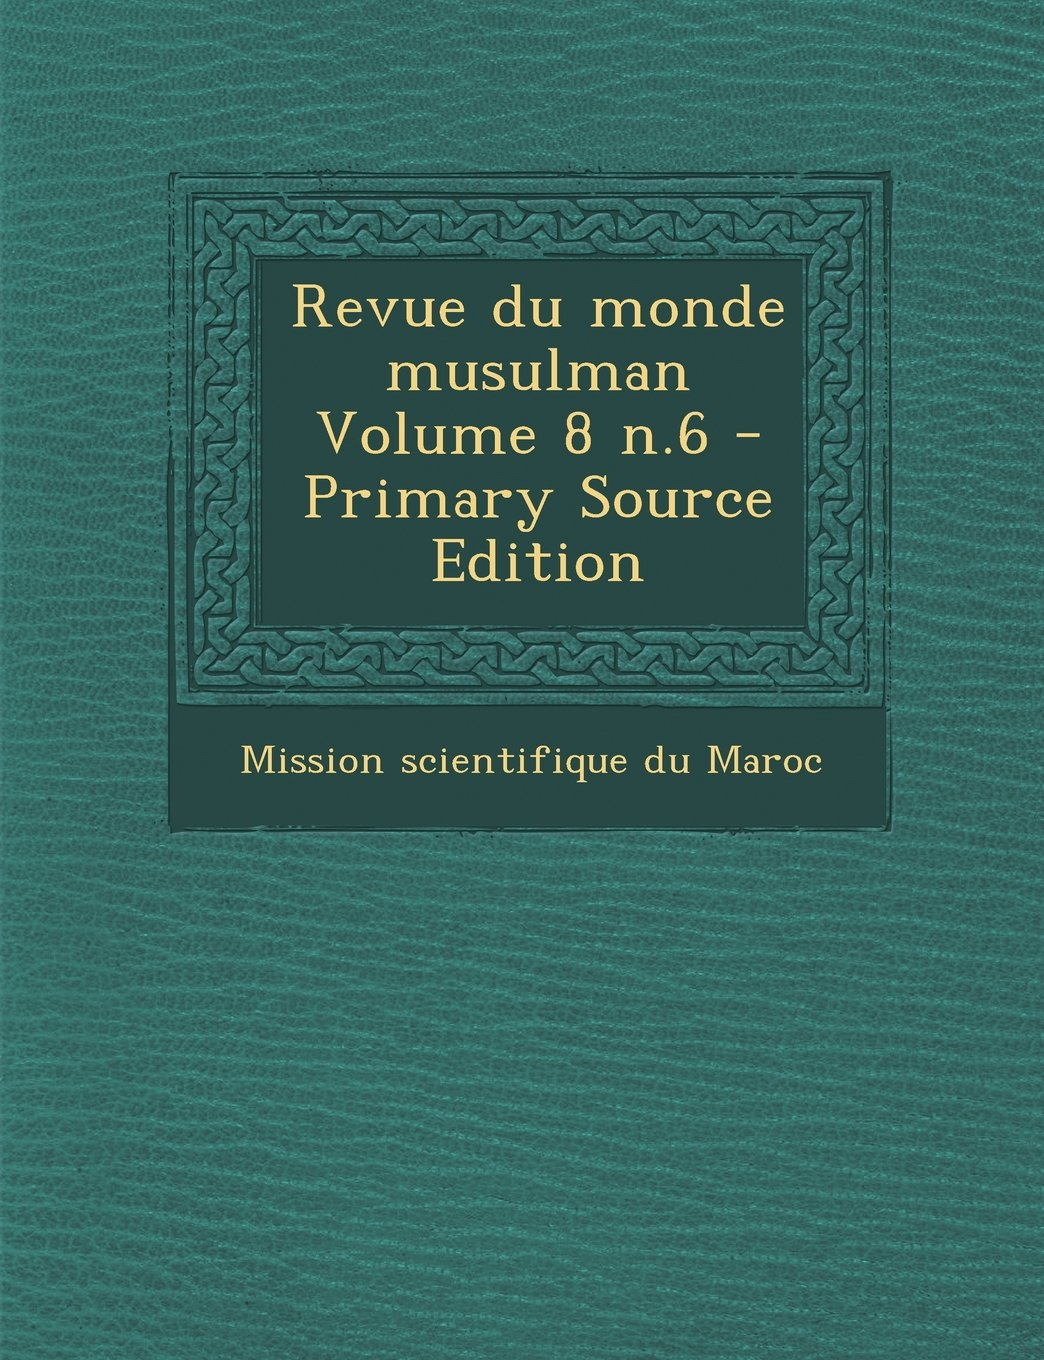 Read Online Revue Du Monde Musulman Volume 8 N.6 - Primary Source Edition (French Edition) ebook